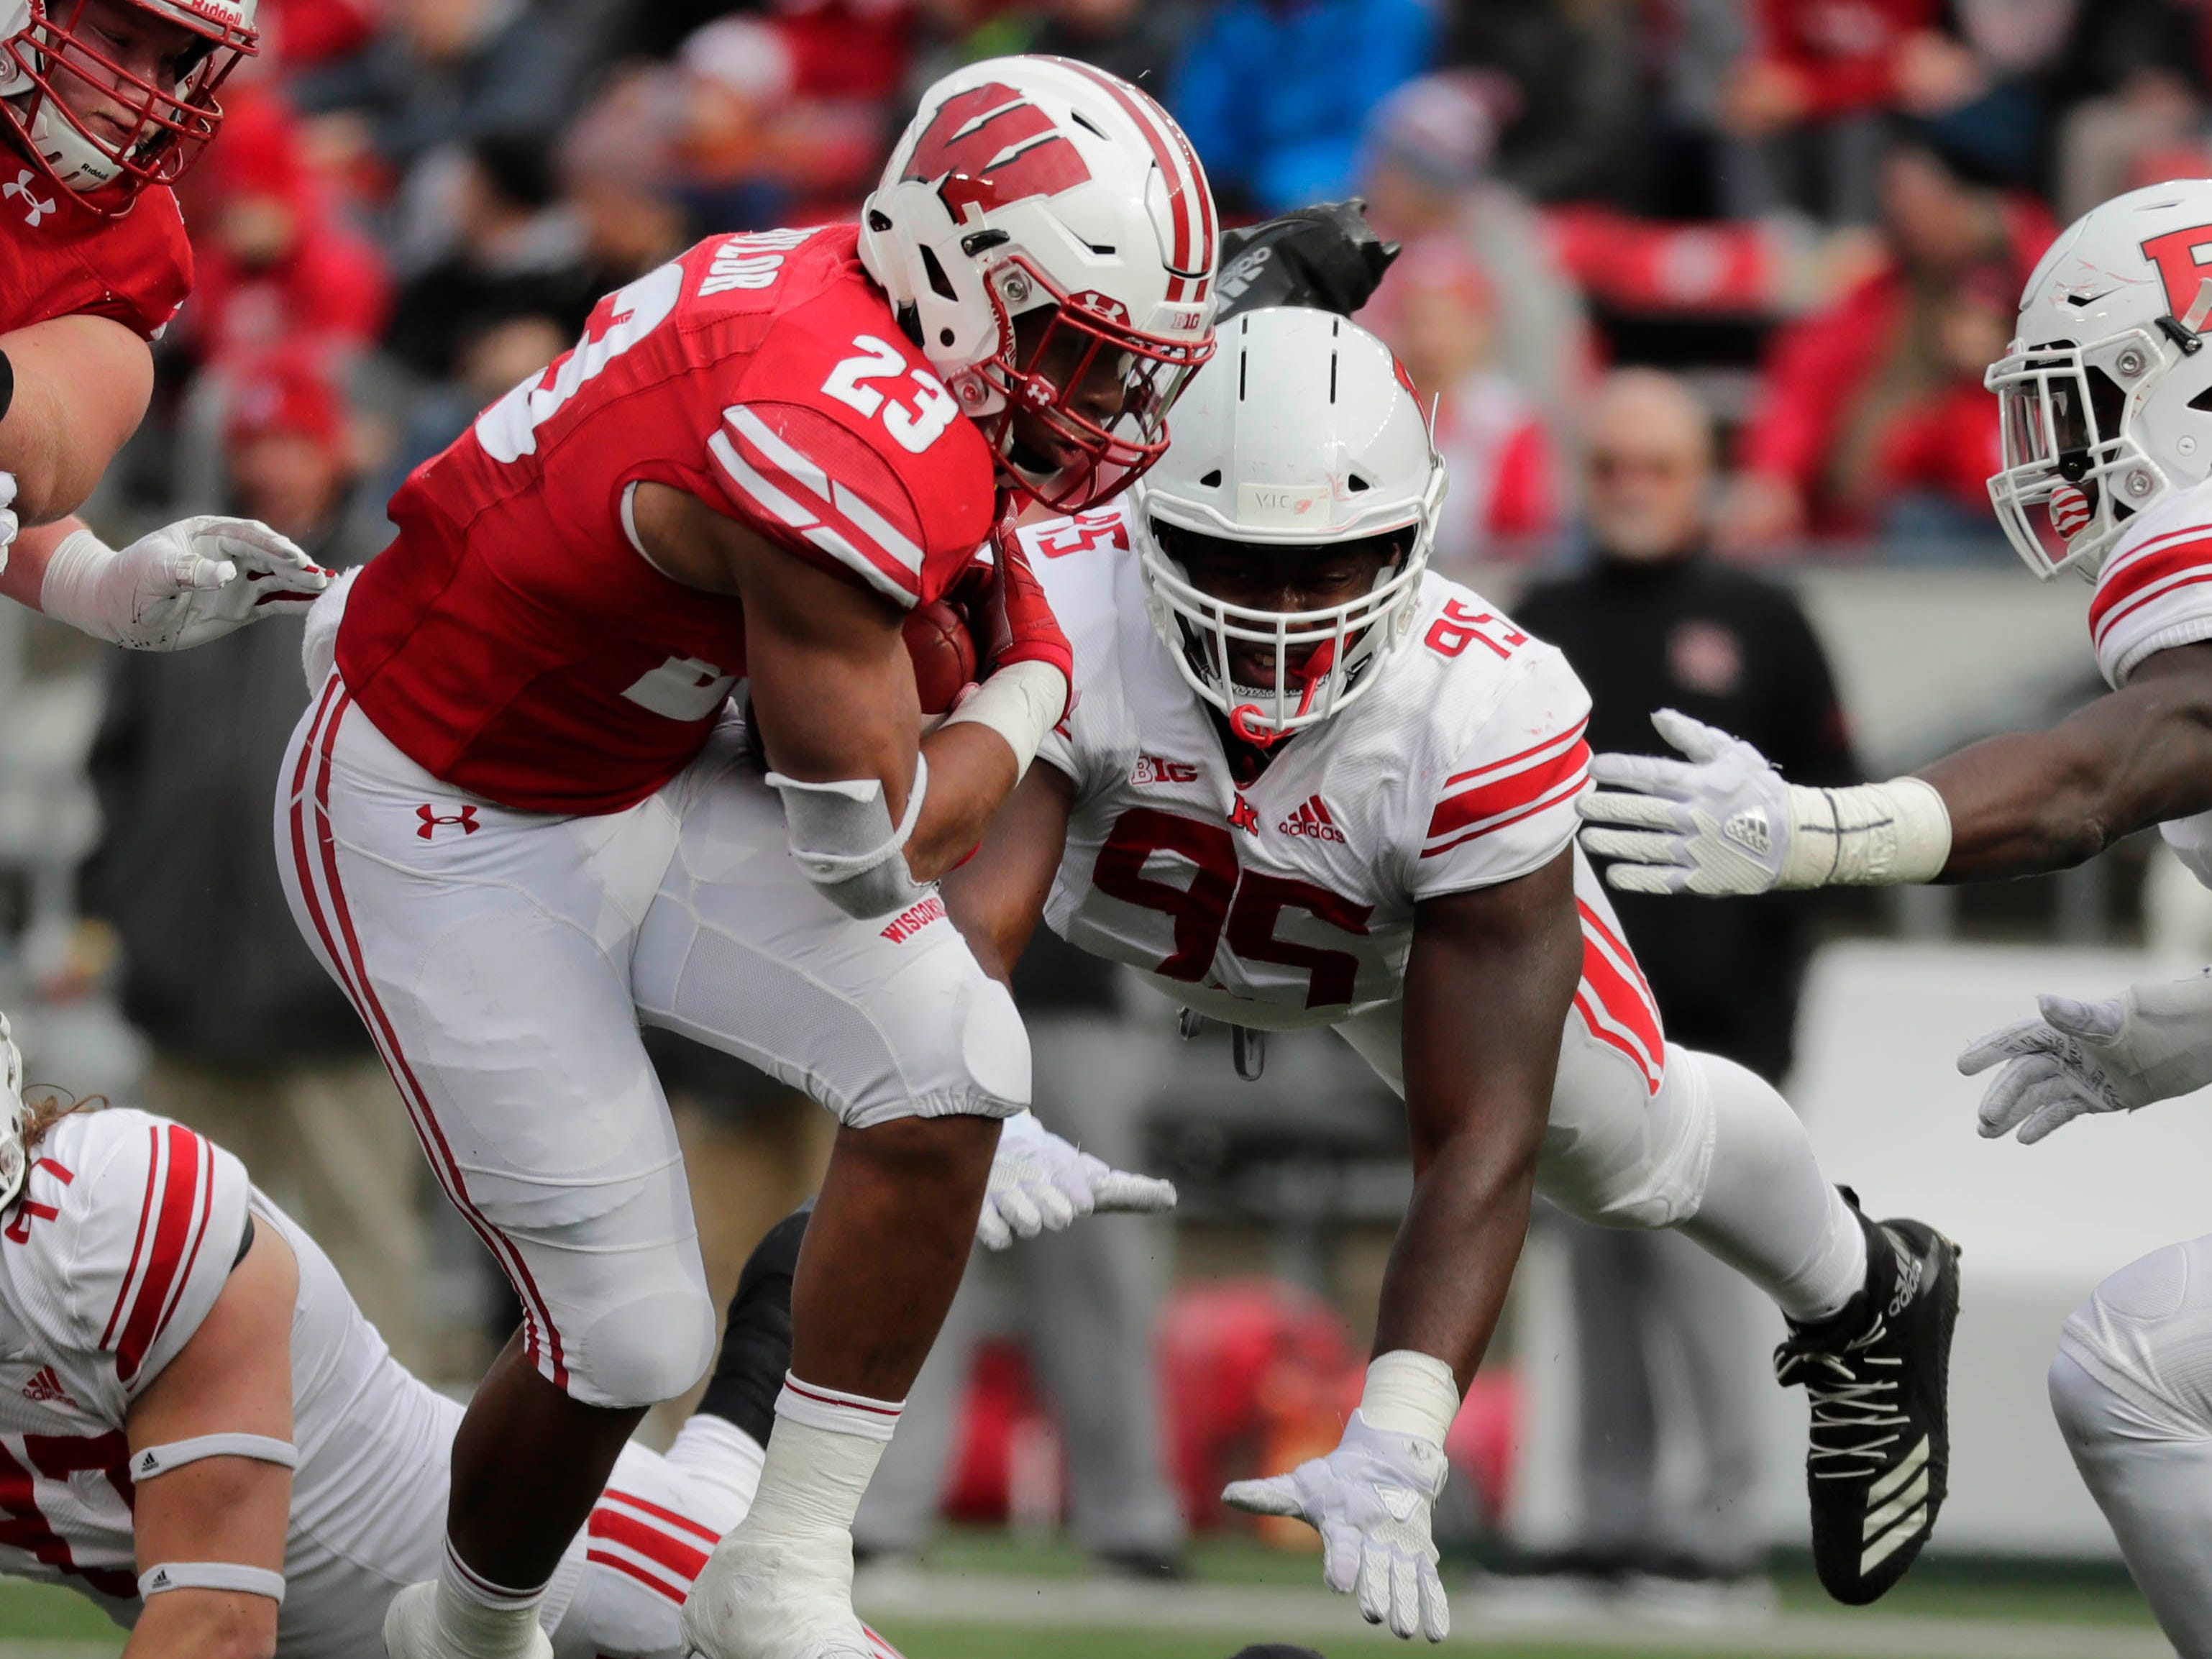 Badgers running back Jonathan Taylor picks ups 6 yards on first down against Rutgers during the the first half Saturday.